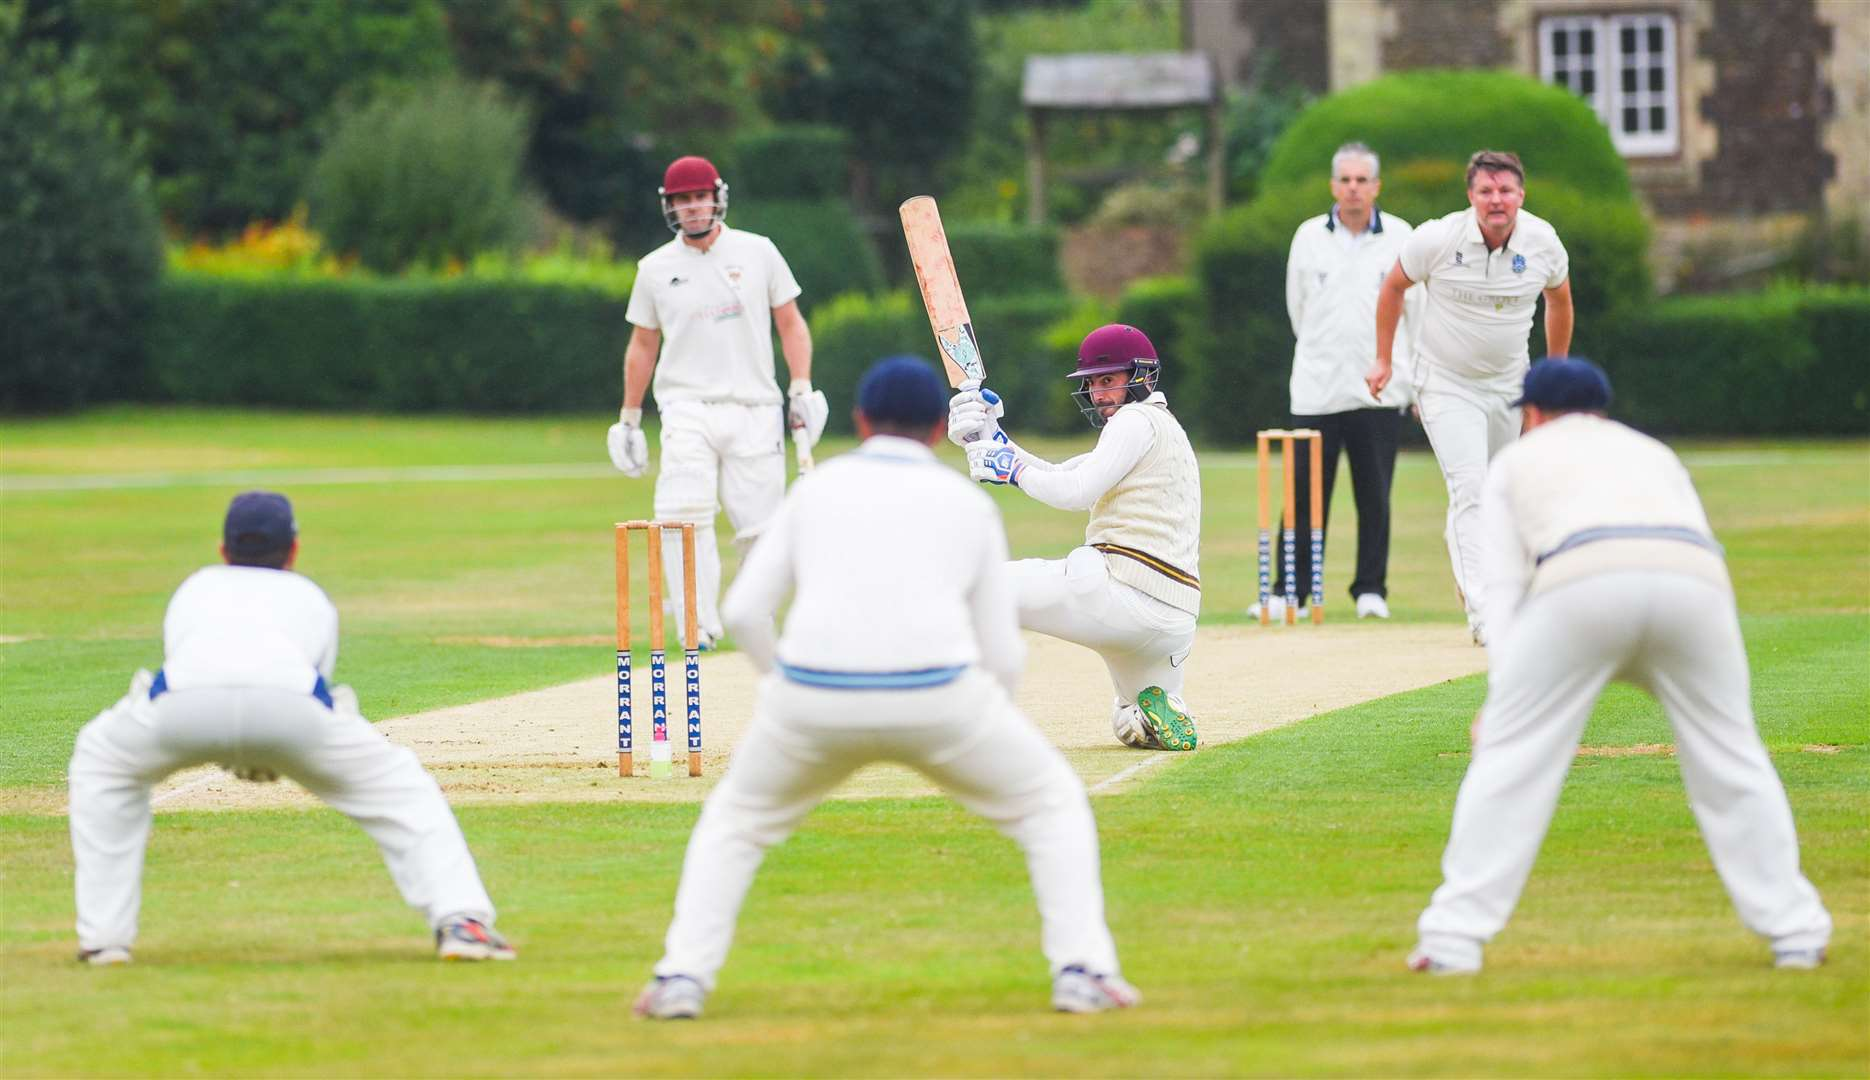 Keith Thomson watches the ball heading towards the Cromer wicket keeper, Oliver Kimber.. (40632548)